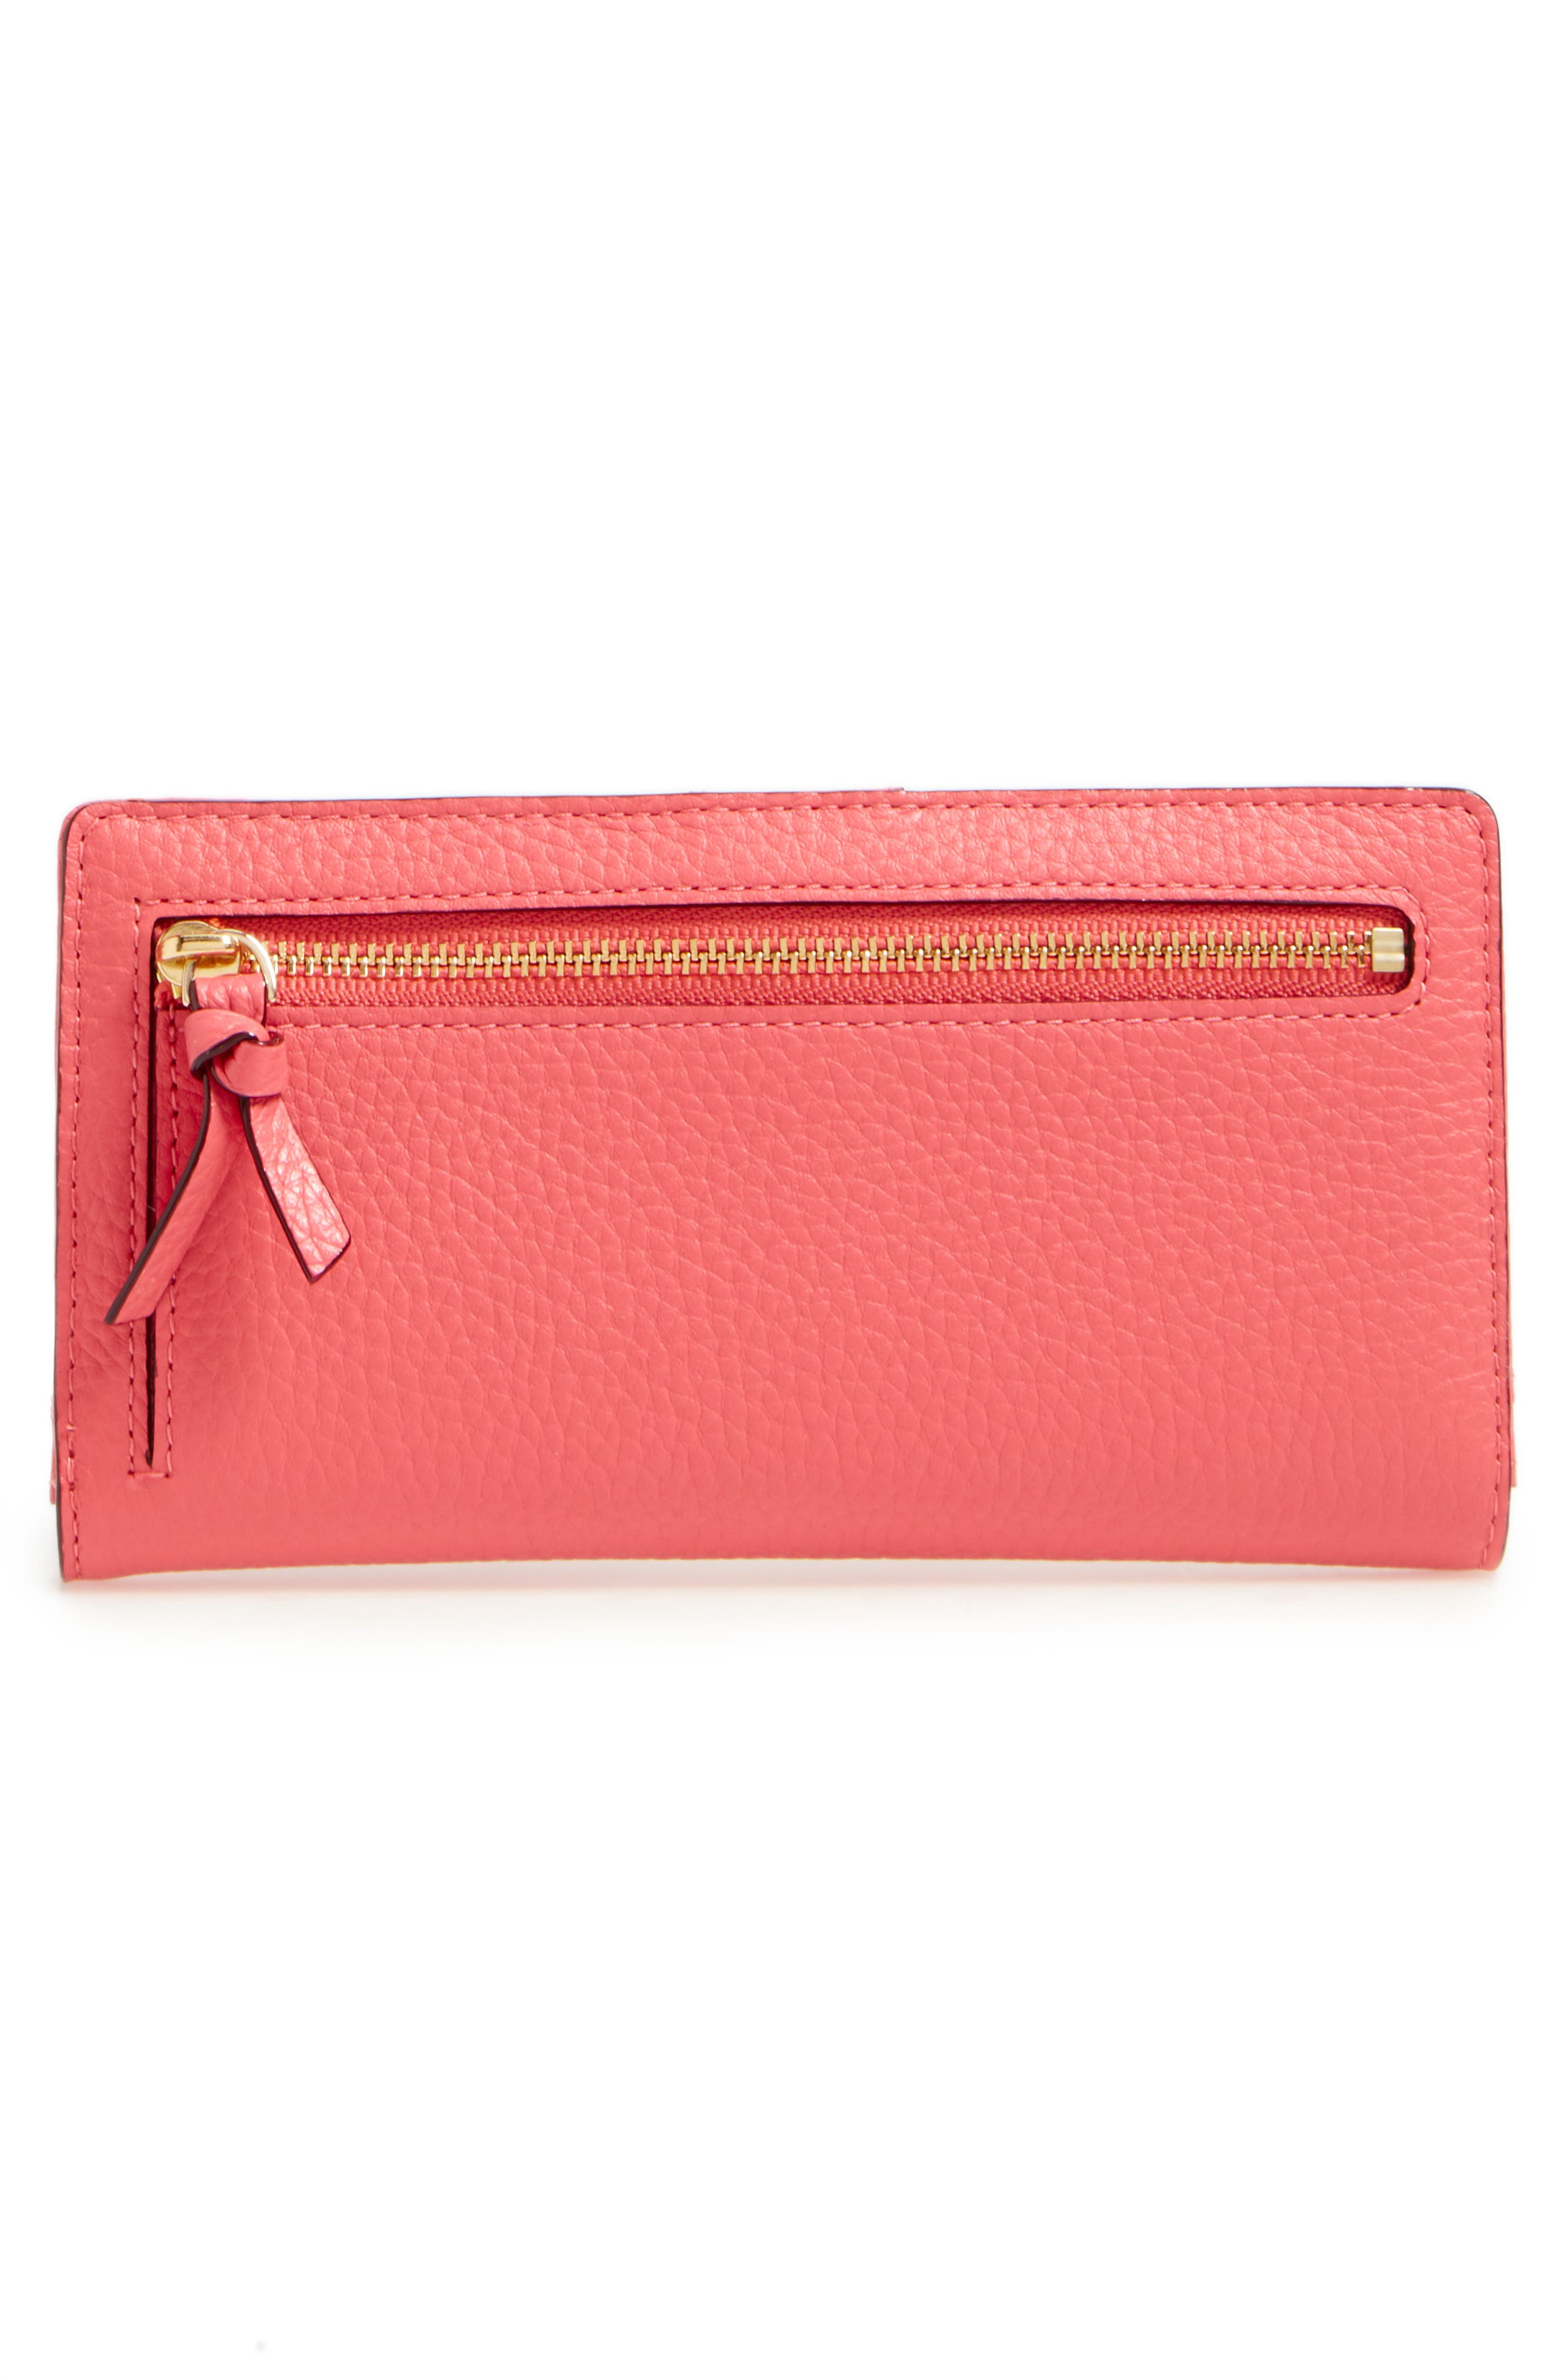 jackson street stacy leather wallet,                             Alternate thumbnail 8, color,